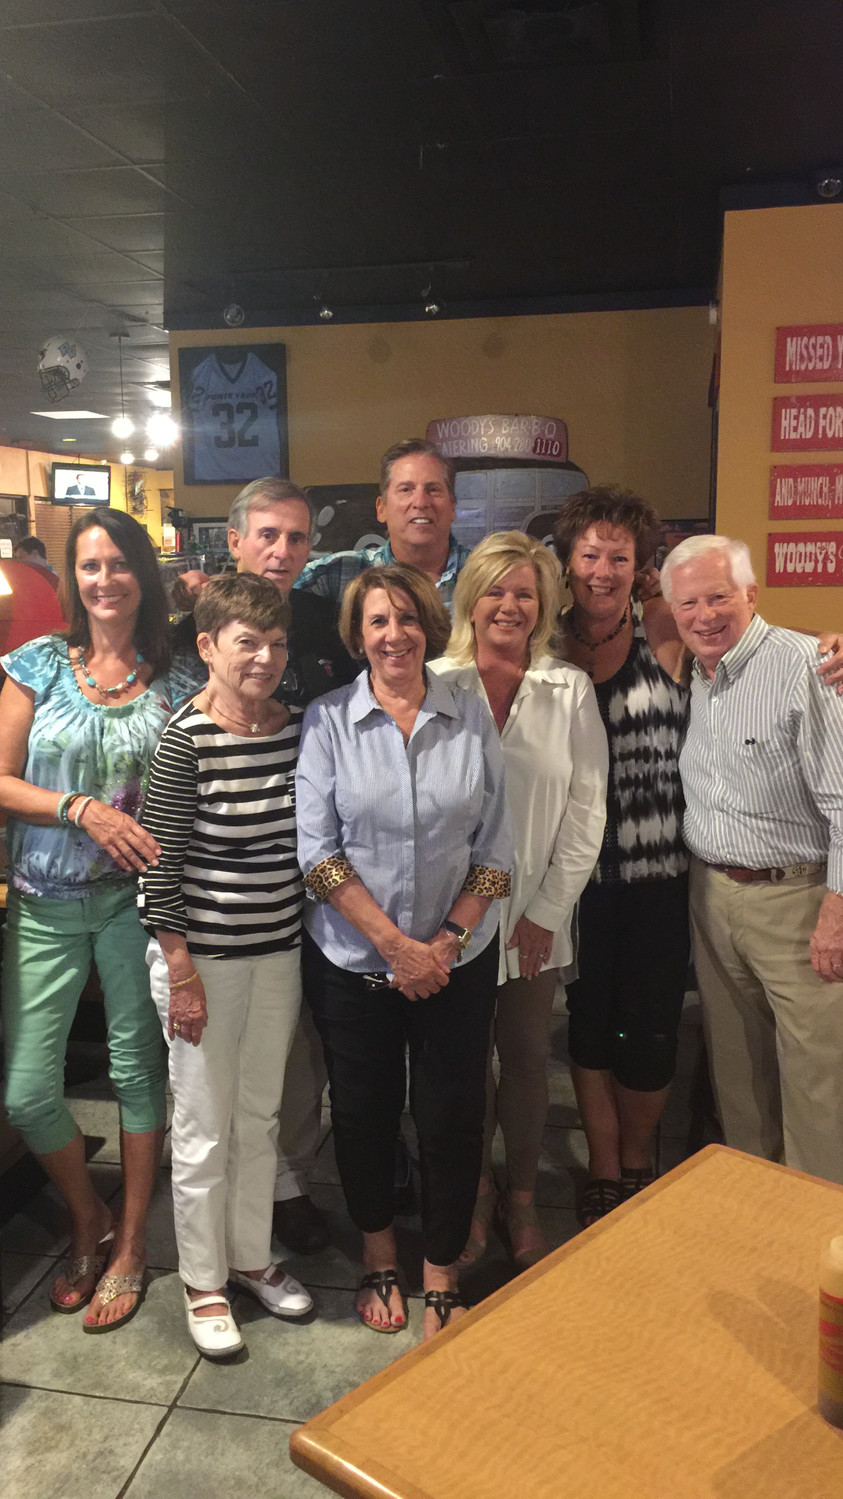 Gary Jurenovich (center, back) gathers with supporters at Woodys Bar-BQ on Tuesday night after winning Seat 1 of the Municipal Service District of Ponte Vedra Beach.